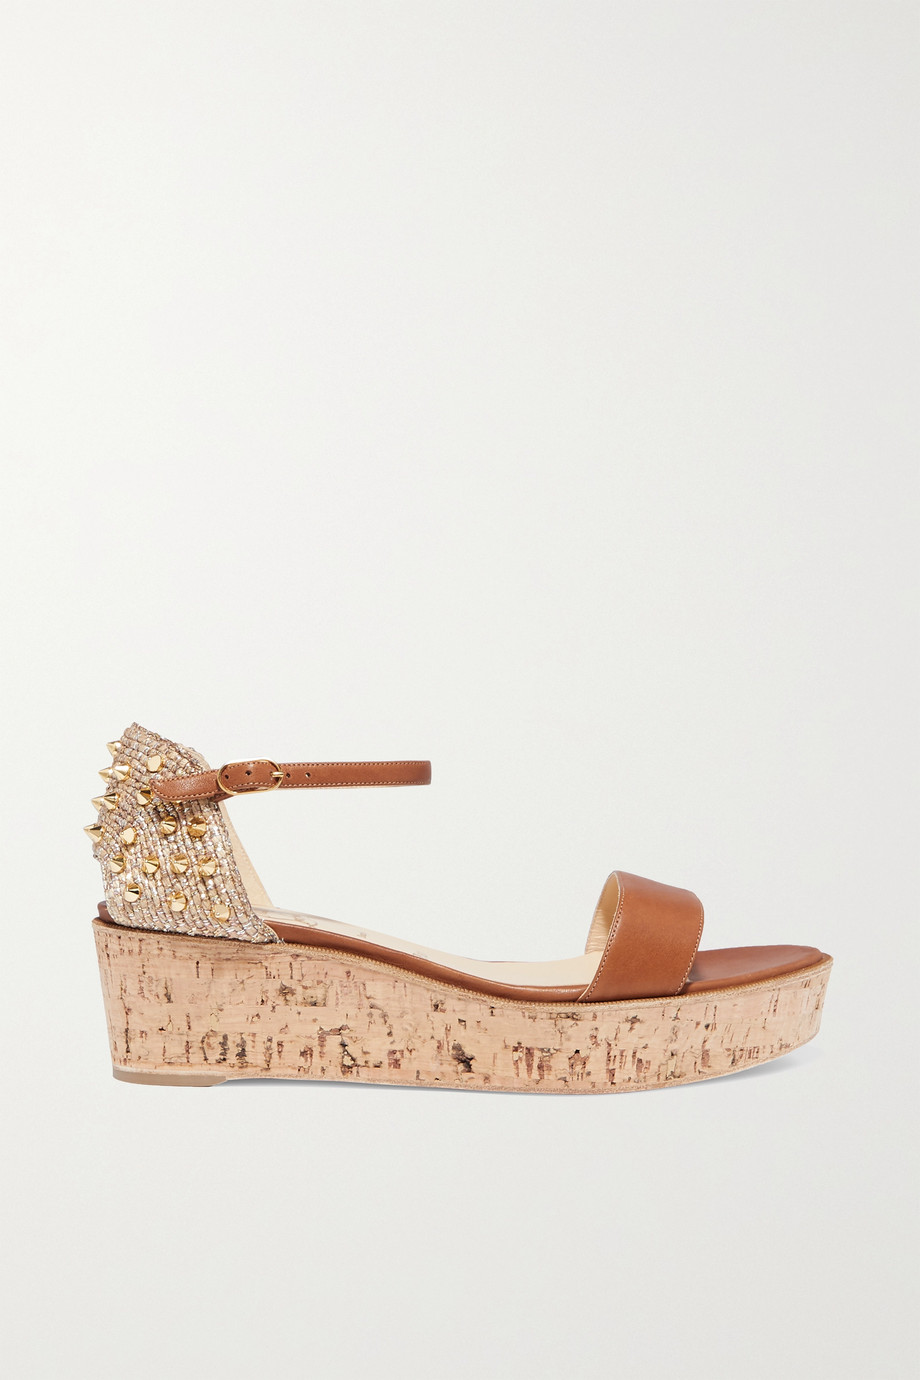 Christian Louboutin Bellamonica 60 spiked leather espadrille wedge sandals